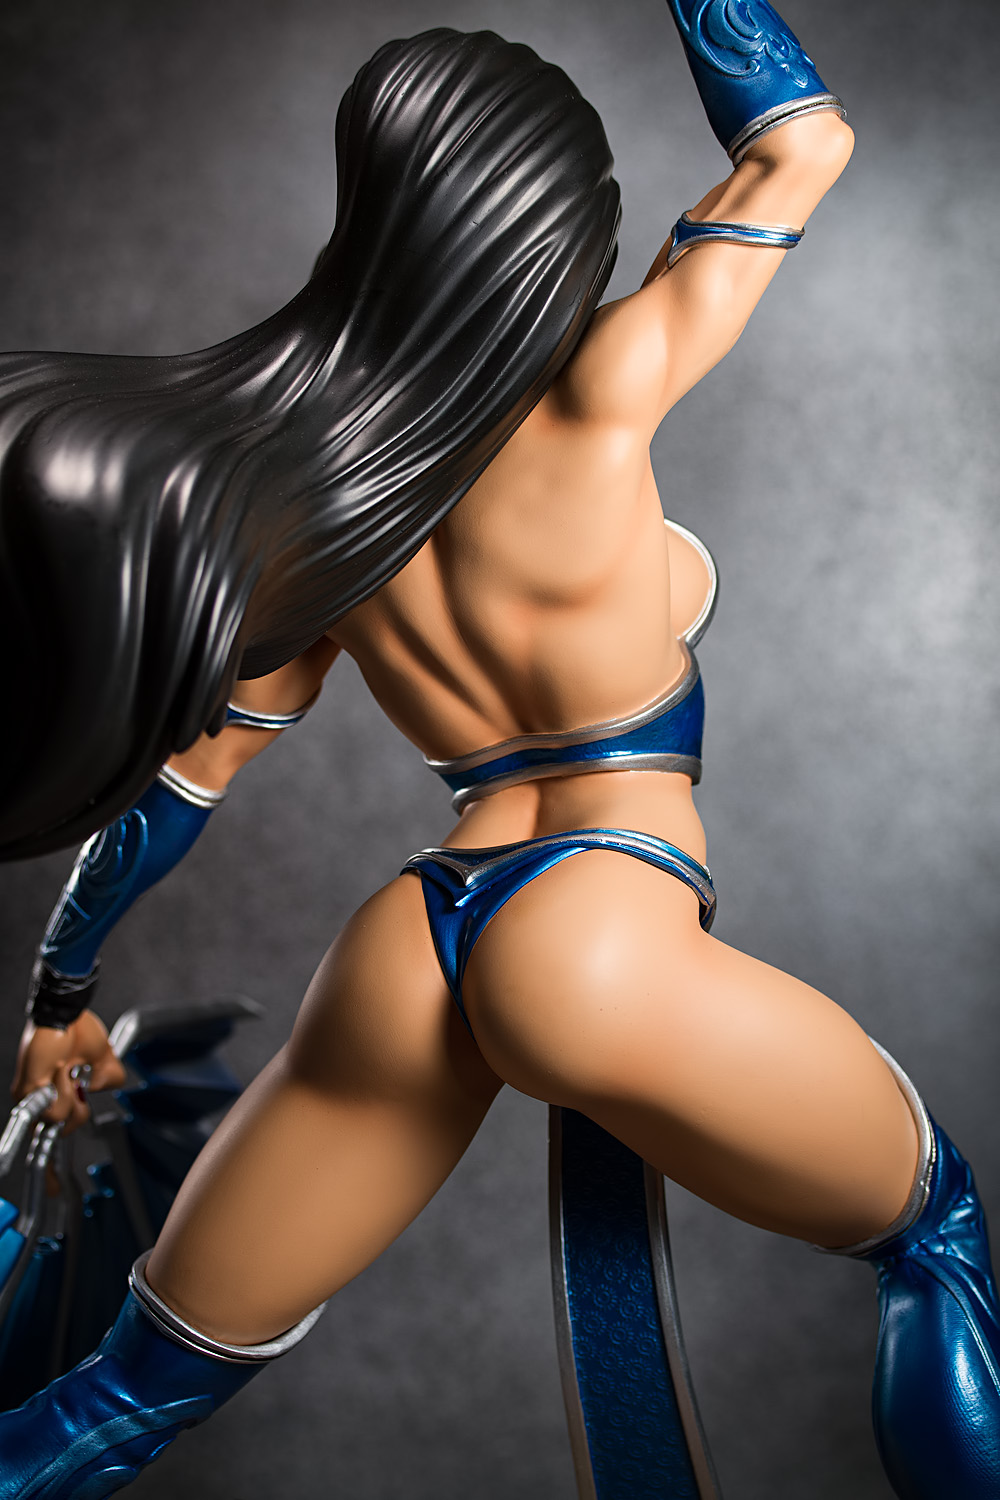 Fighter kitana nude softcore picture